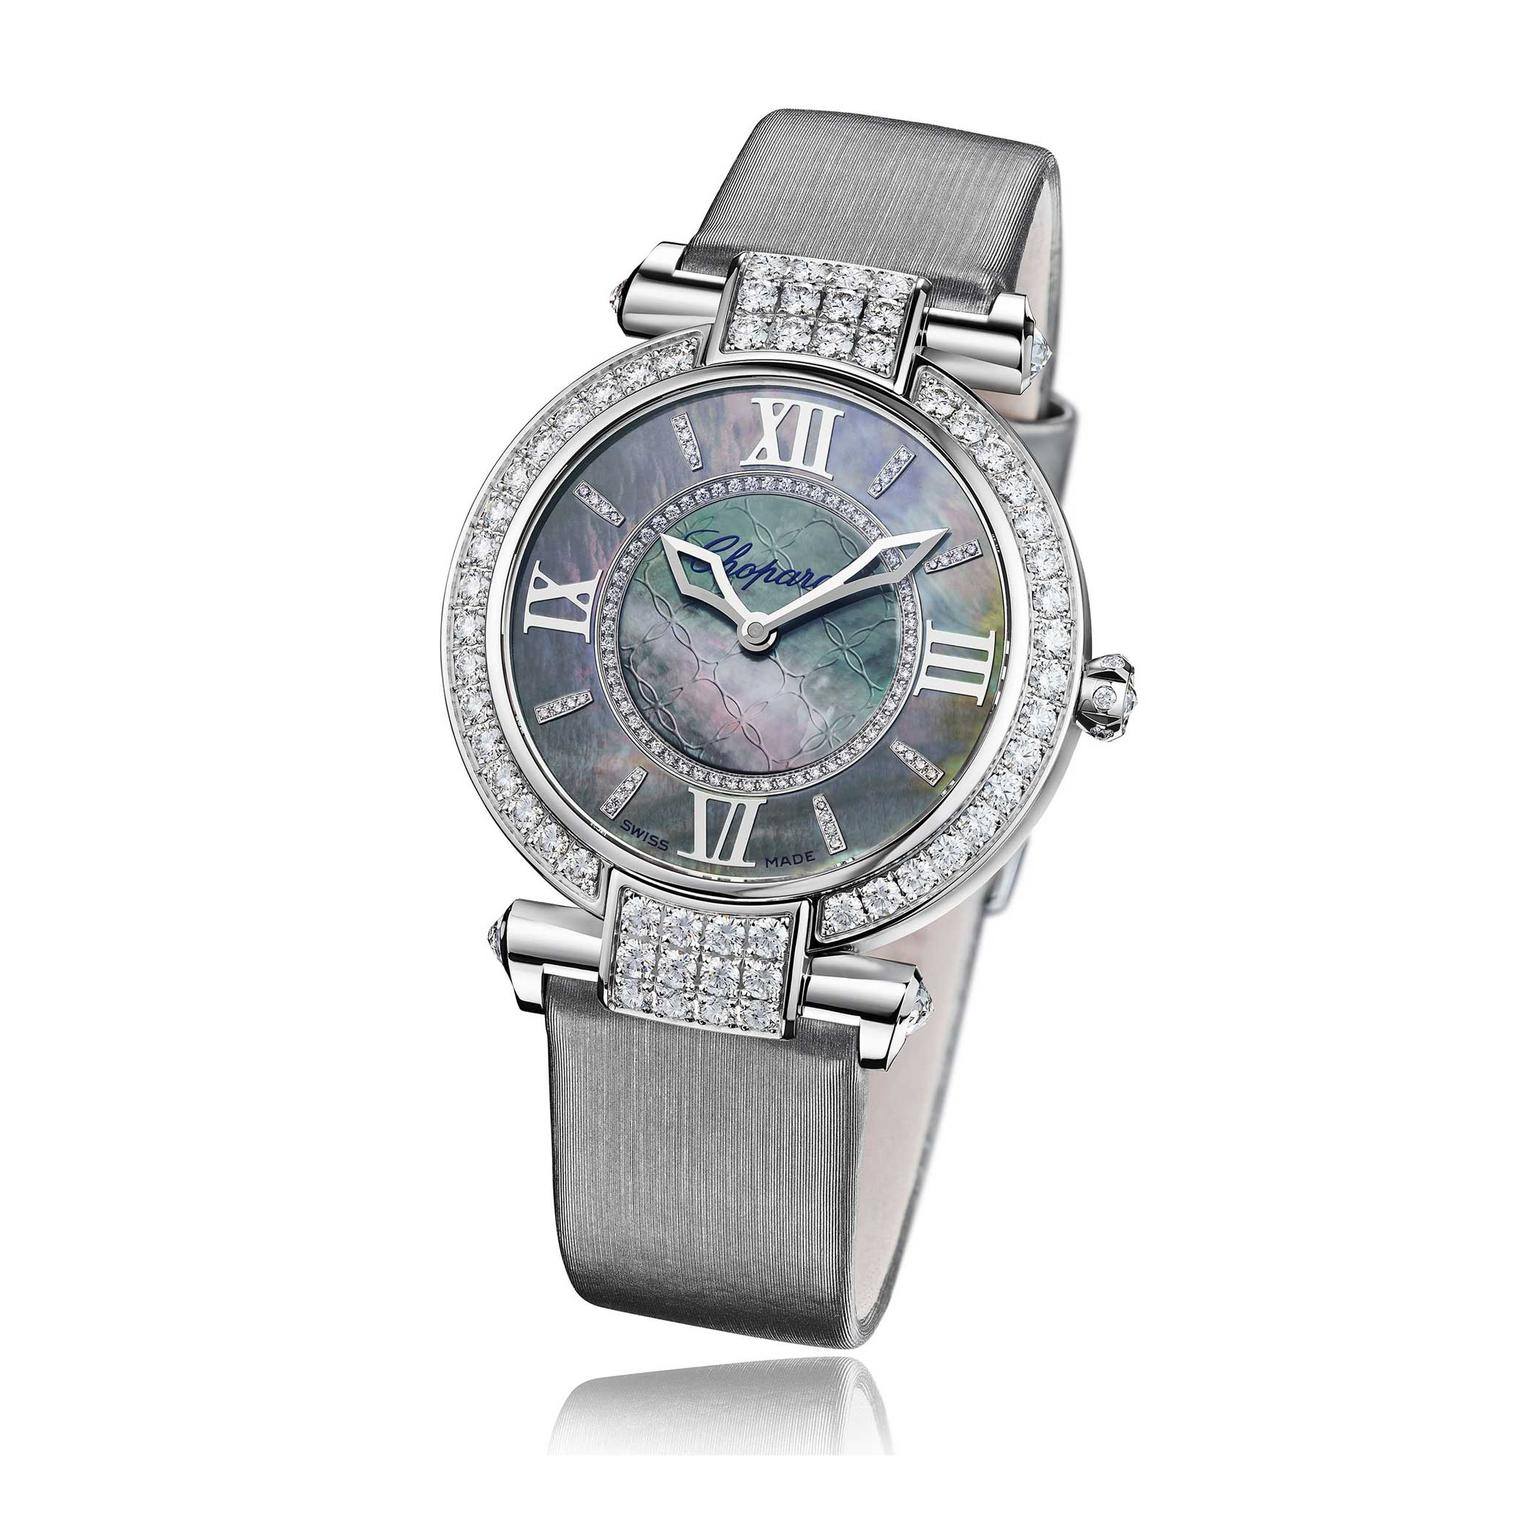 Chopard Imperiale 36mm watch with mother of pearl dial